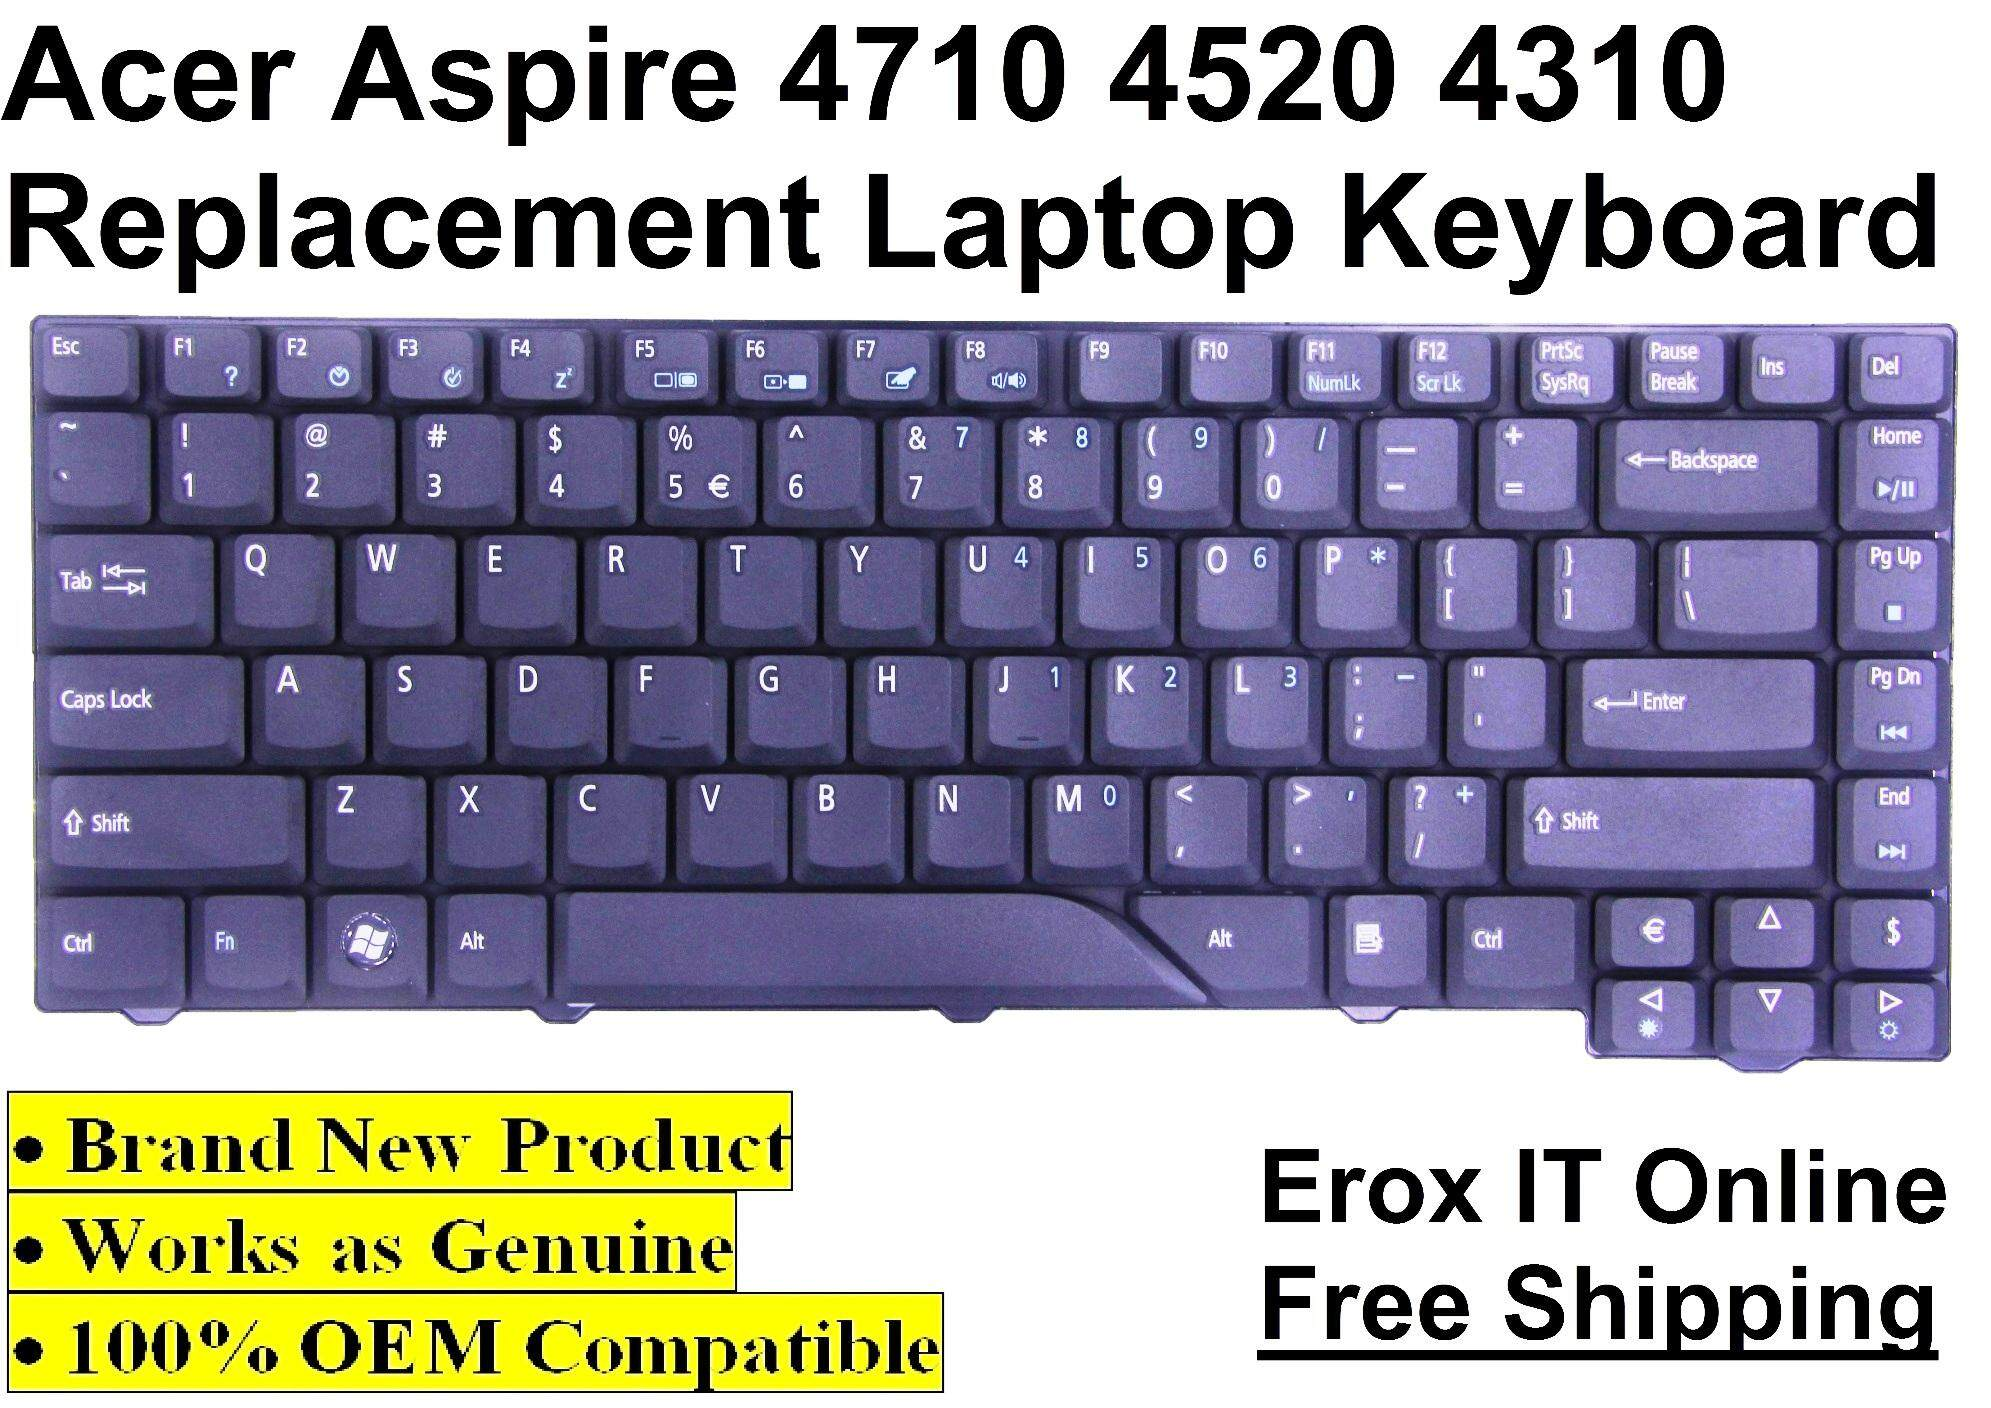 Sell Soogood Replacement Keyboard Cheapest Best Quality My Store Laptop For Acer Aspire 4732 4732z Series Emachines D725 D525 Myr 30 4720 4710 Oem Keyboardmyr30